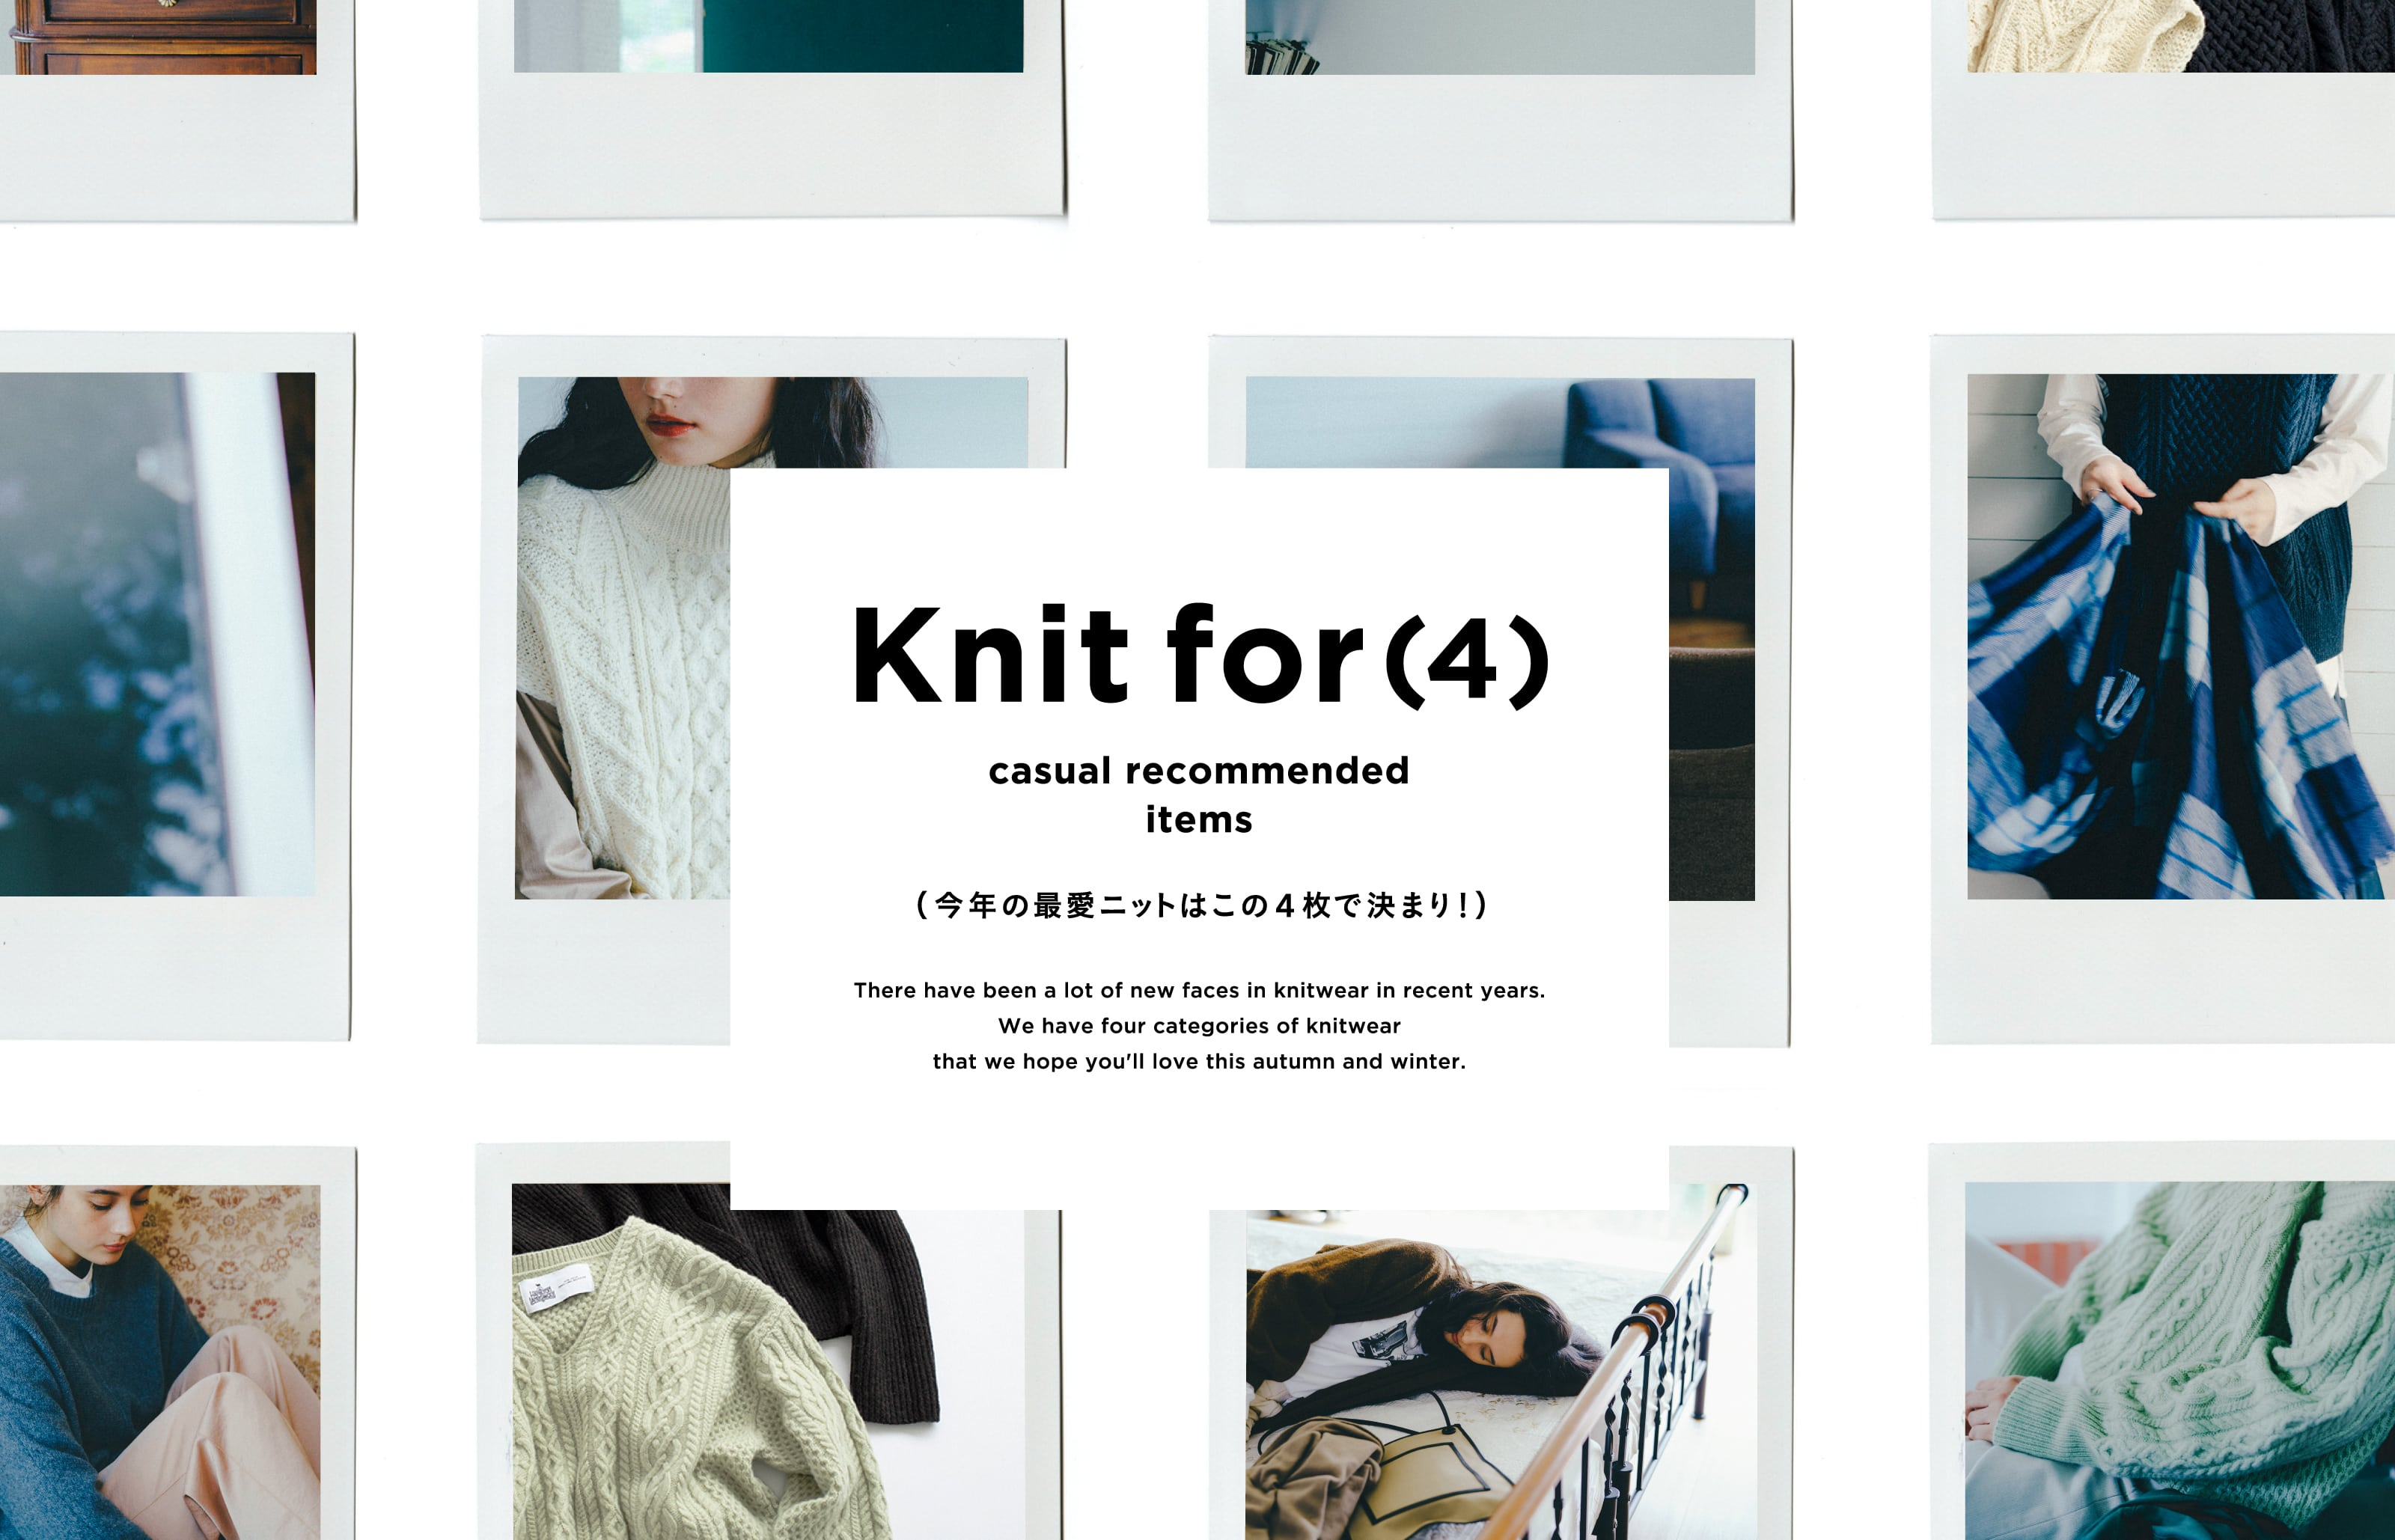 Knit for